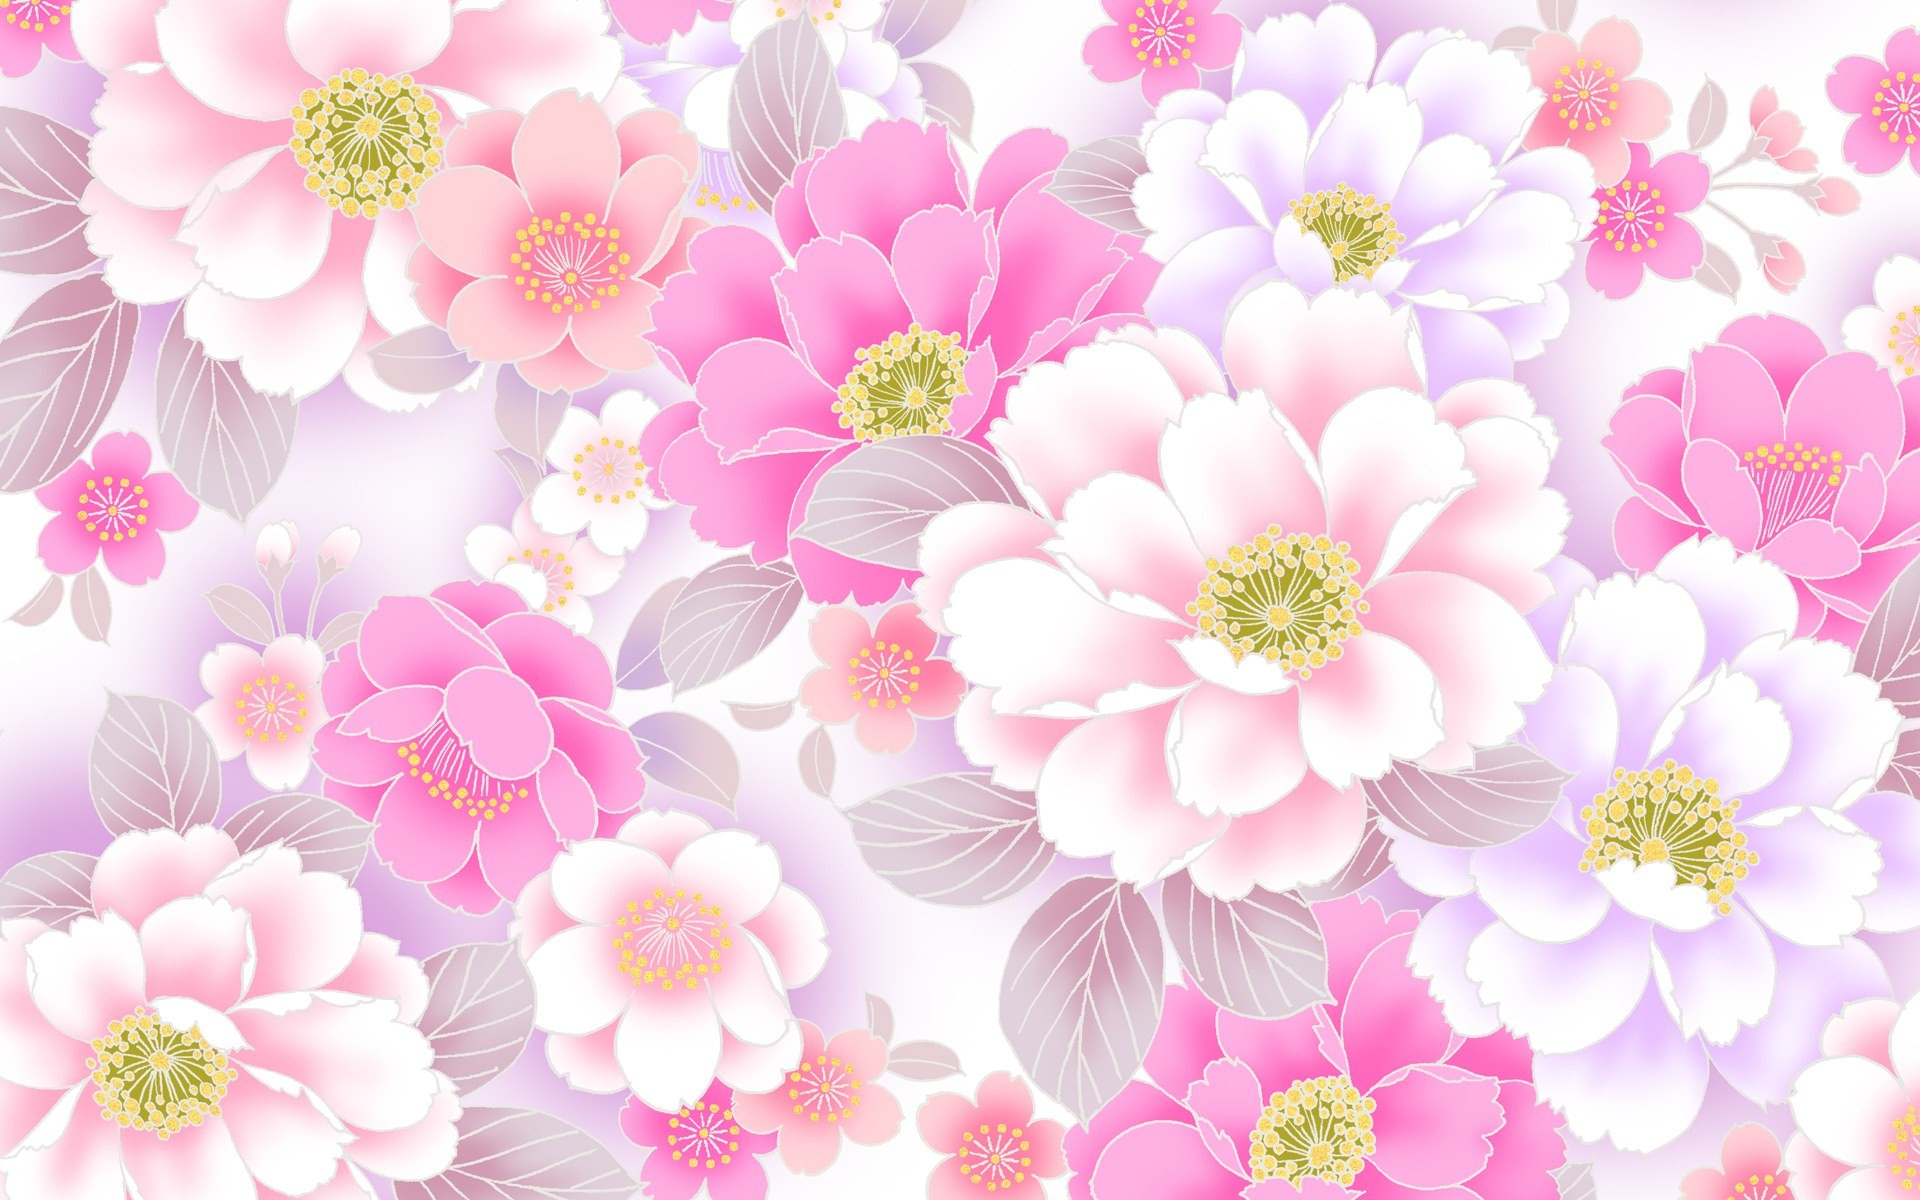 Backgrounds Of Flowers